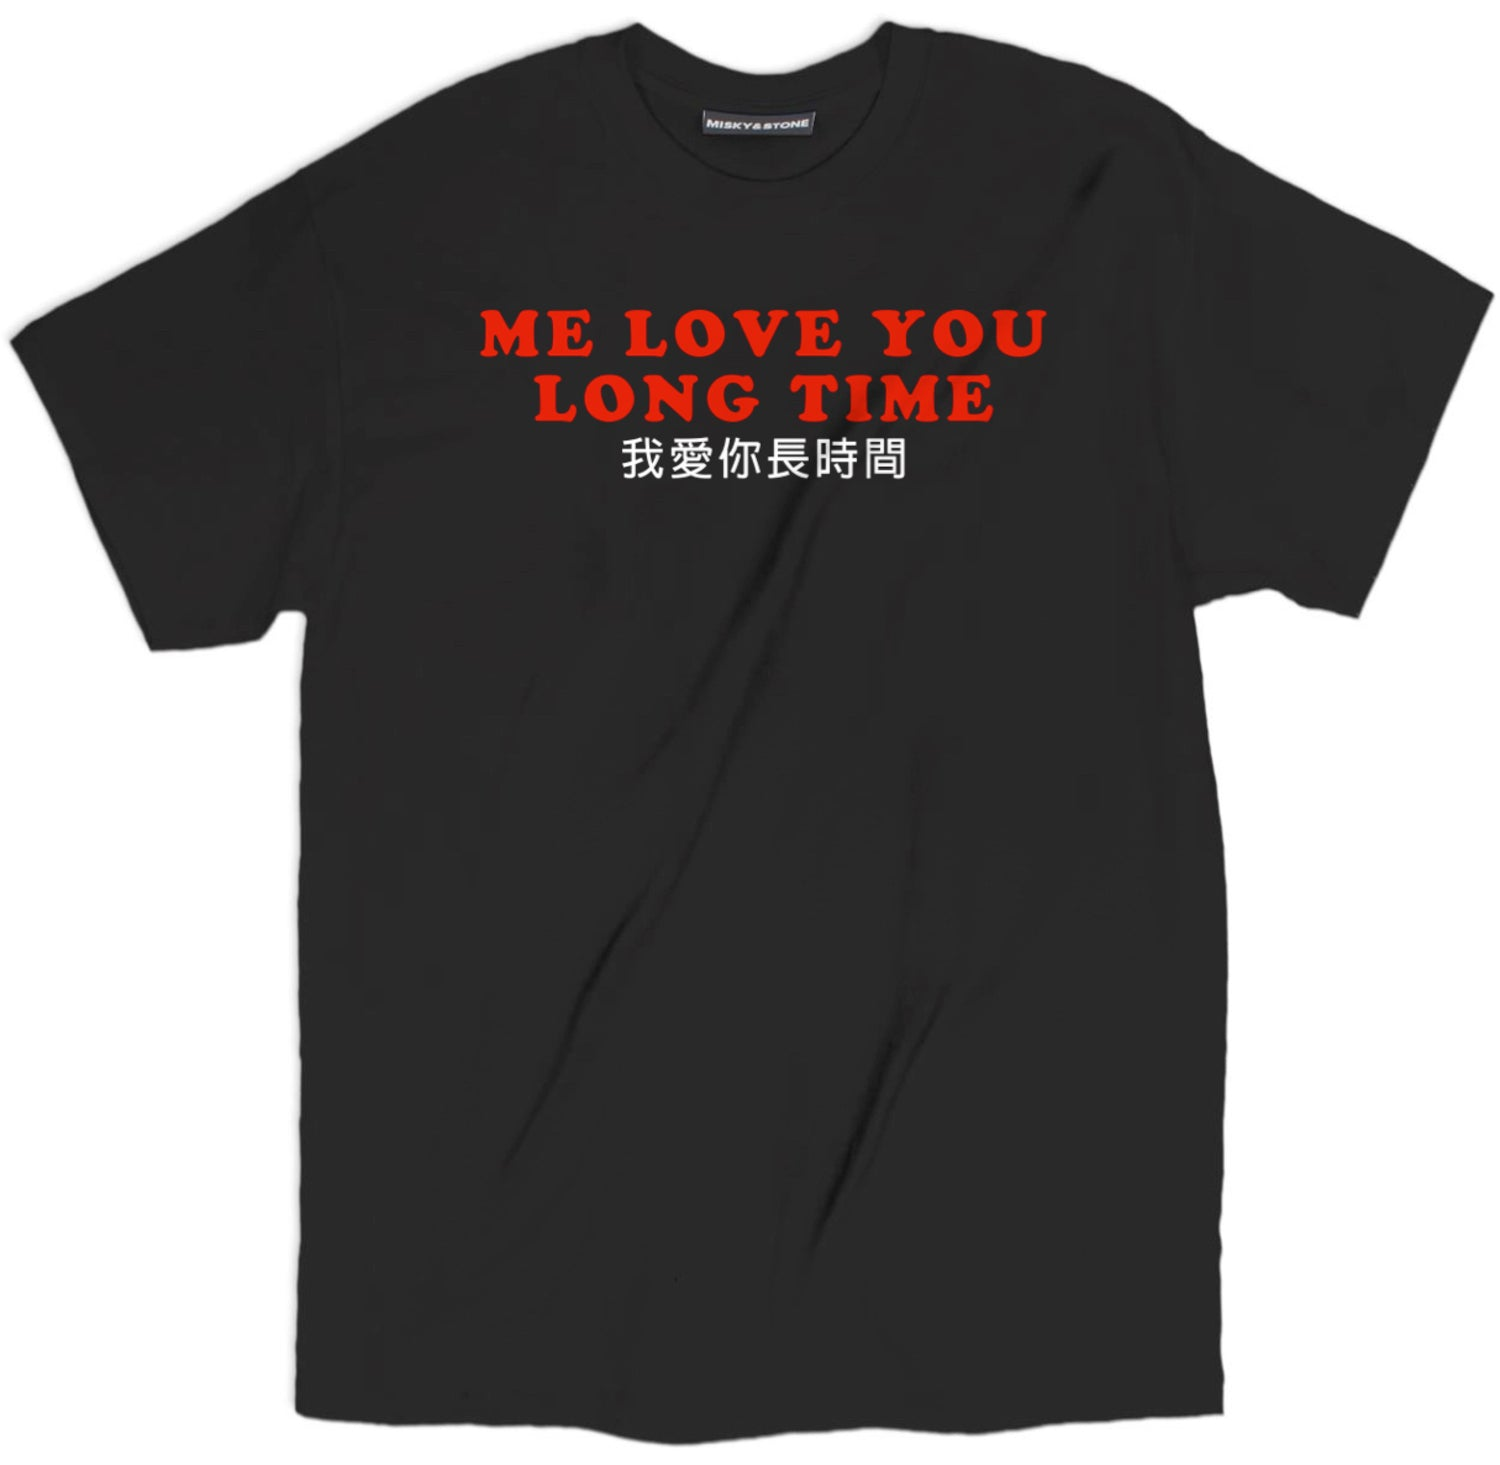 me love you long time funny t shirt, love you long time tee, funny t shirts, funny graphic tees, awesome shirts, hilarious shirts, cool t shirts, funny shirts, funny tee shirts, novelty t shirts, awesome t shirts, cool tee shirts, funny tees, crazy t shirts, funny graphic tees, funny tshirt sayings, pun t shirts, awesome shirts, funny tshirt quotes,  tshirt sayings, pun t shirts, awesome shirts